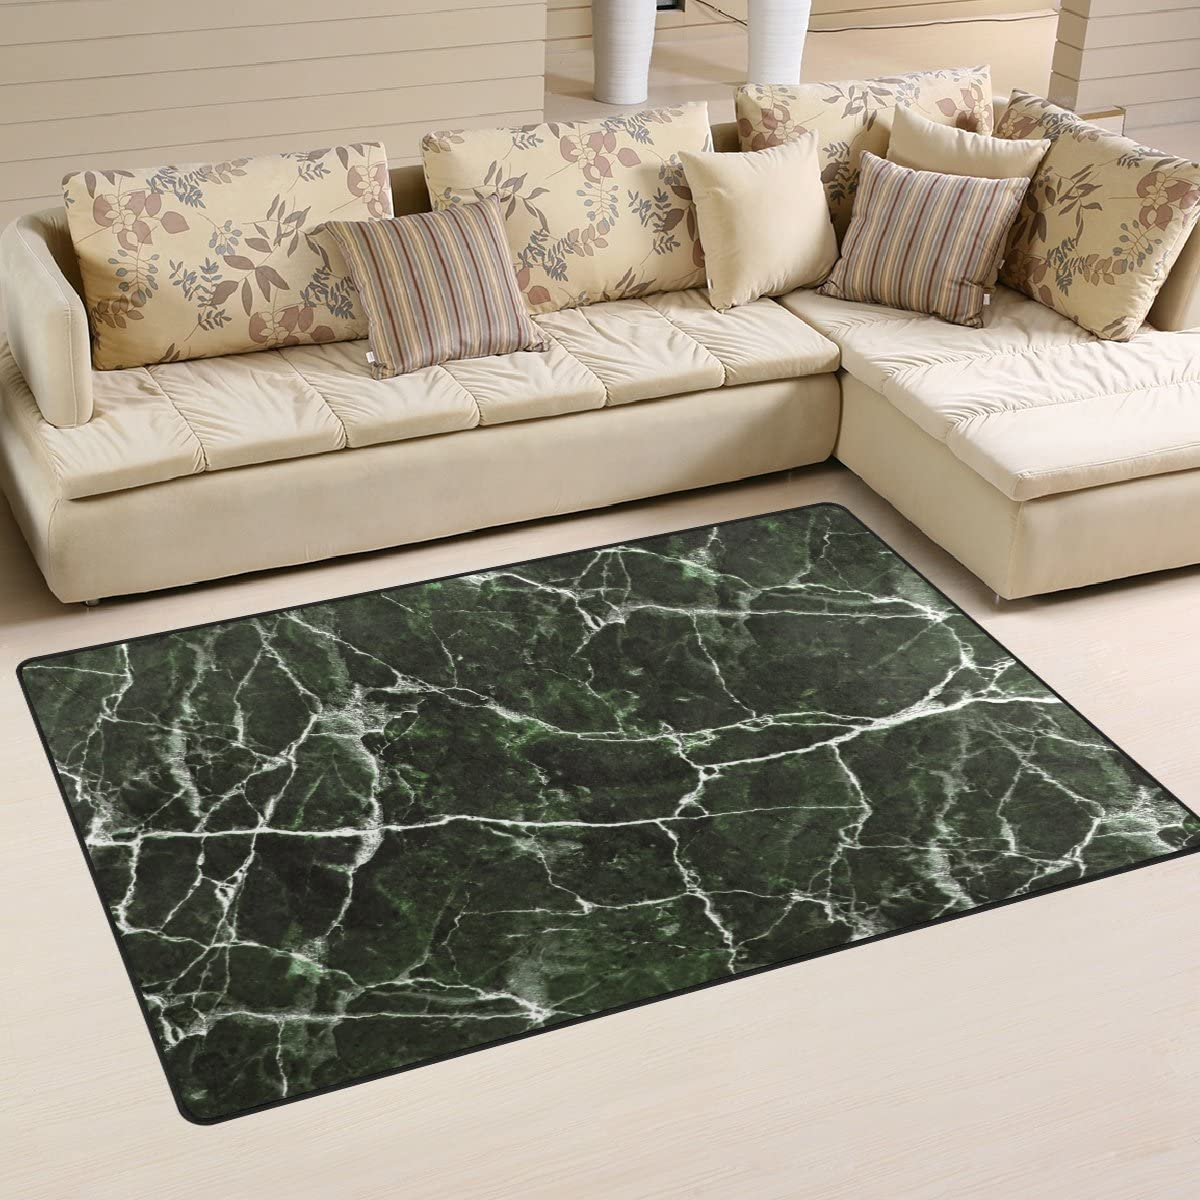 WellLee Area Rug 2.7'x1.8',Green Marble Stone Floor Rug Non-Slip Doormat for Living Dining Dorm Room Bedroom Decor